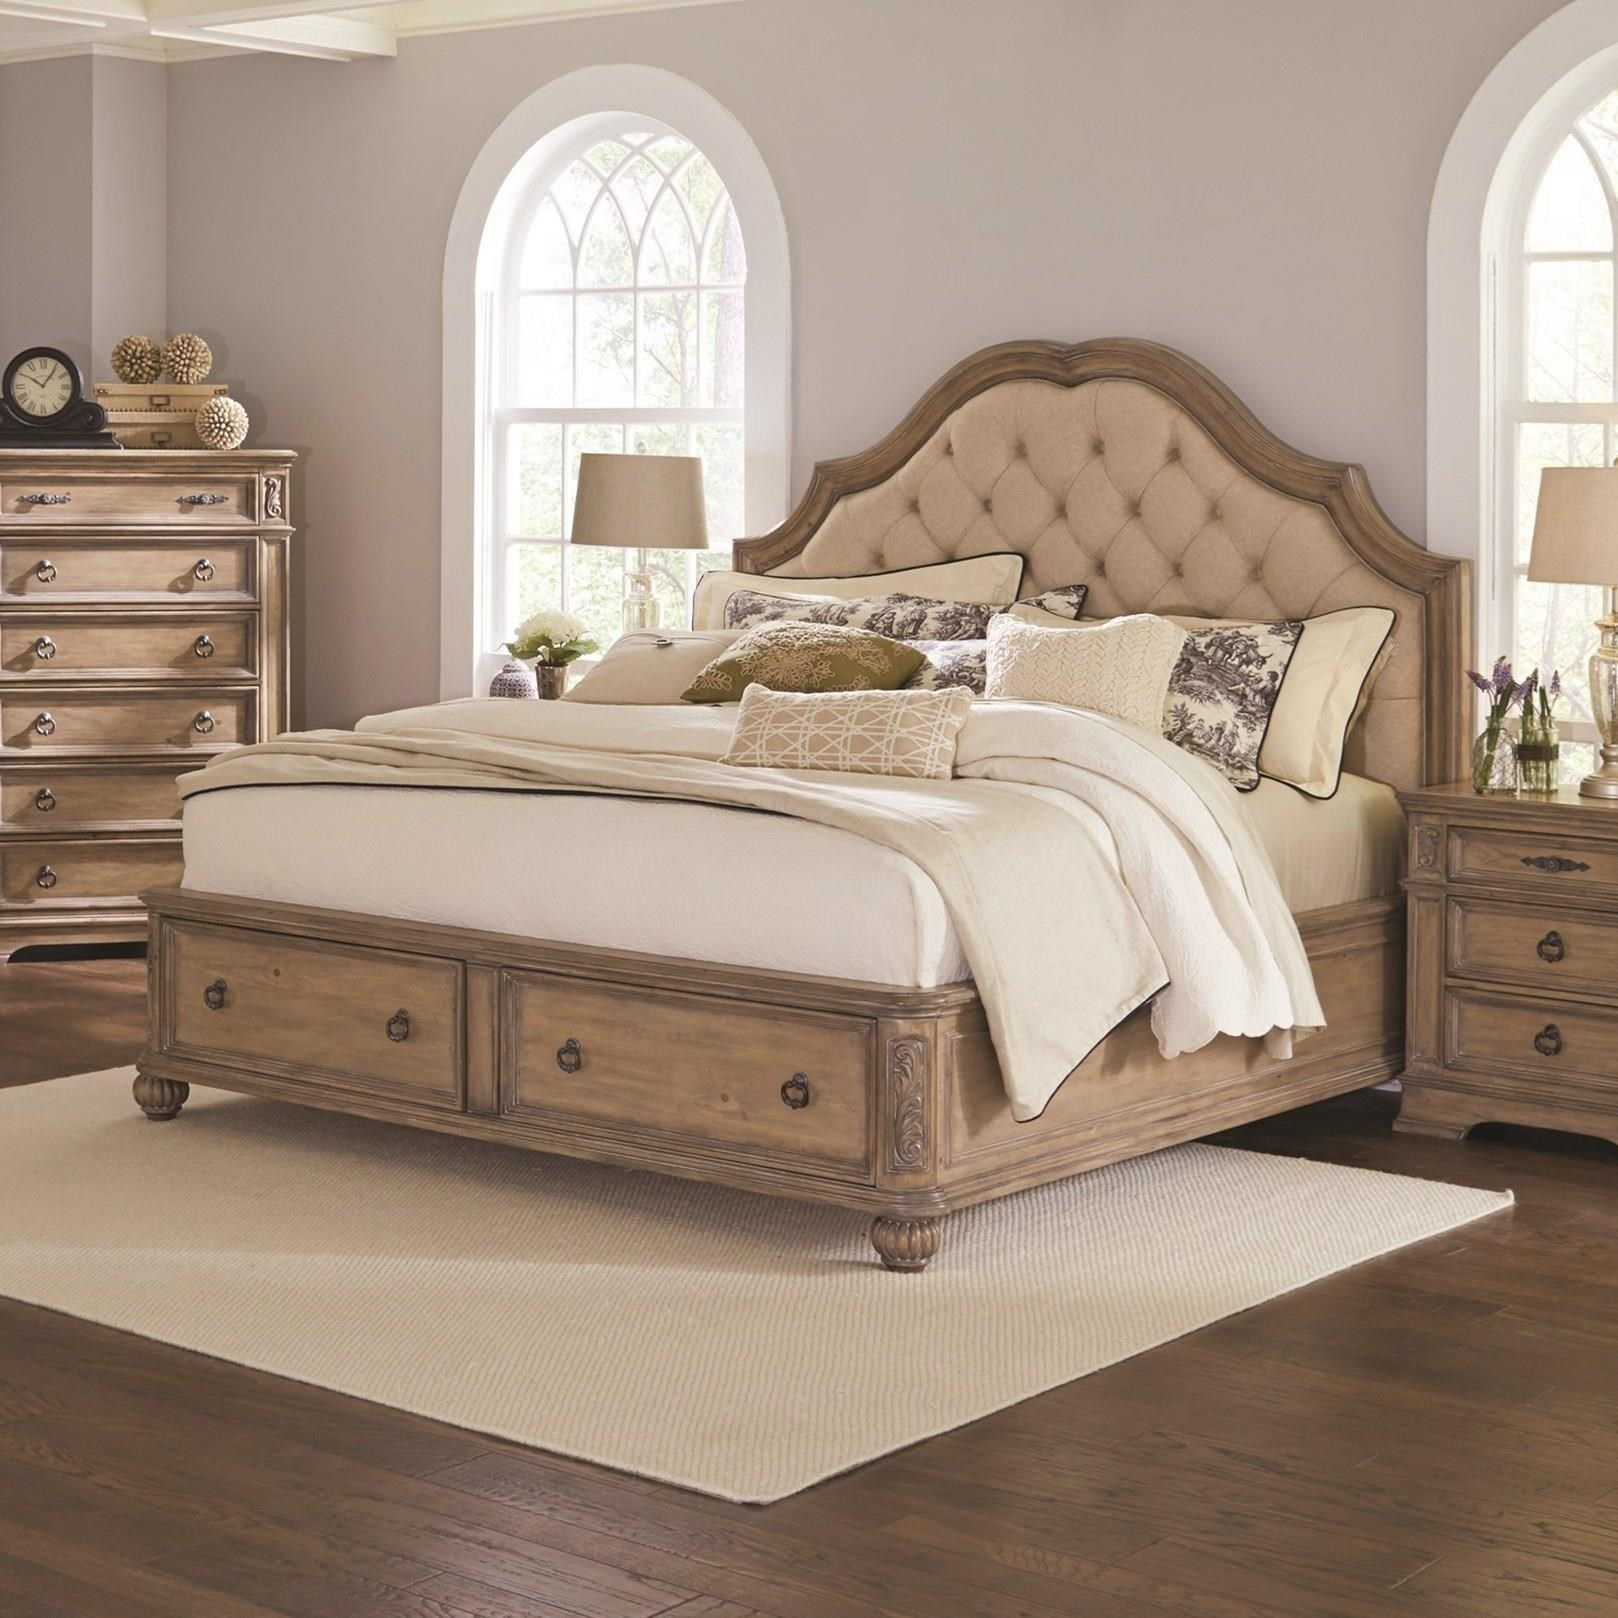 Ilana Collection 205070kw California King Bed With A Deep Tufted Upholstered Headboard With Extra Storage In The Footboard And Finish In Antique Linen By Coaster Furniture